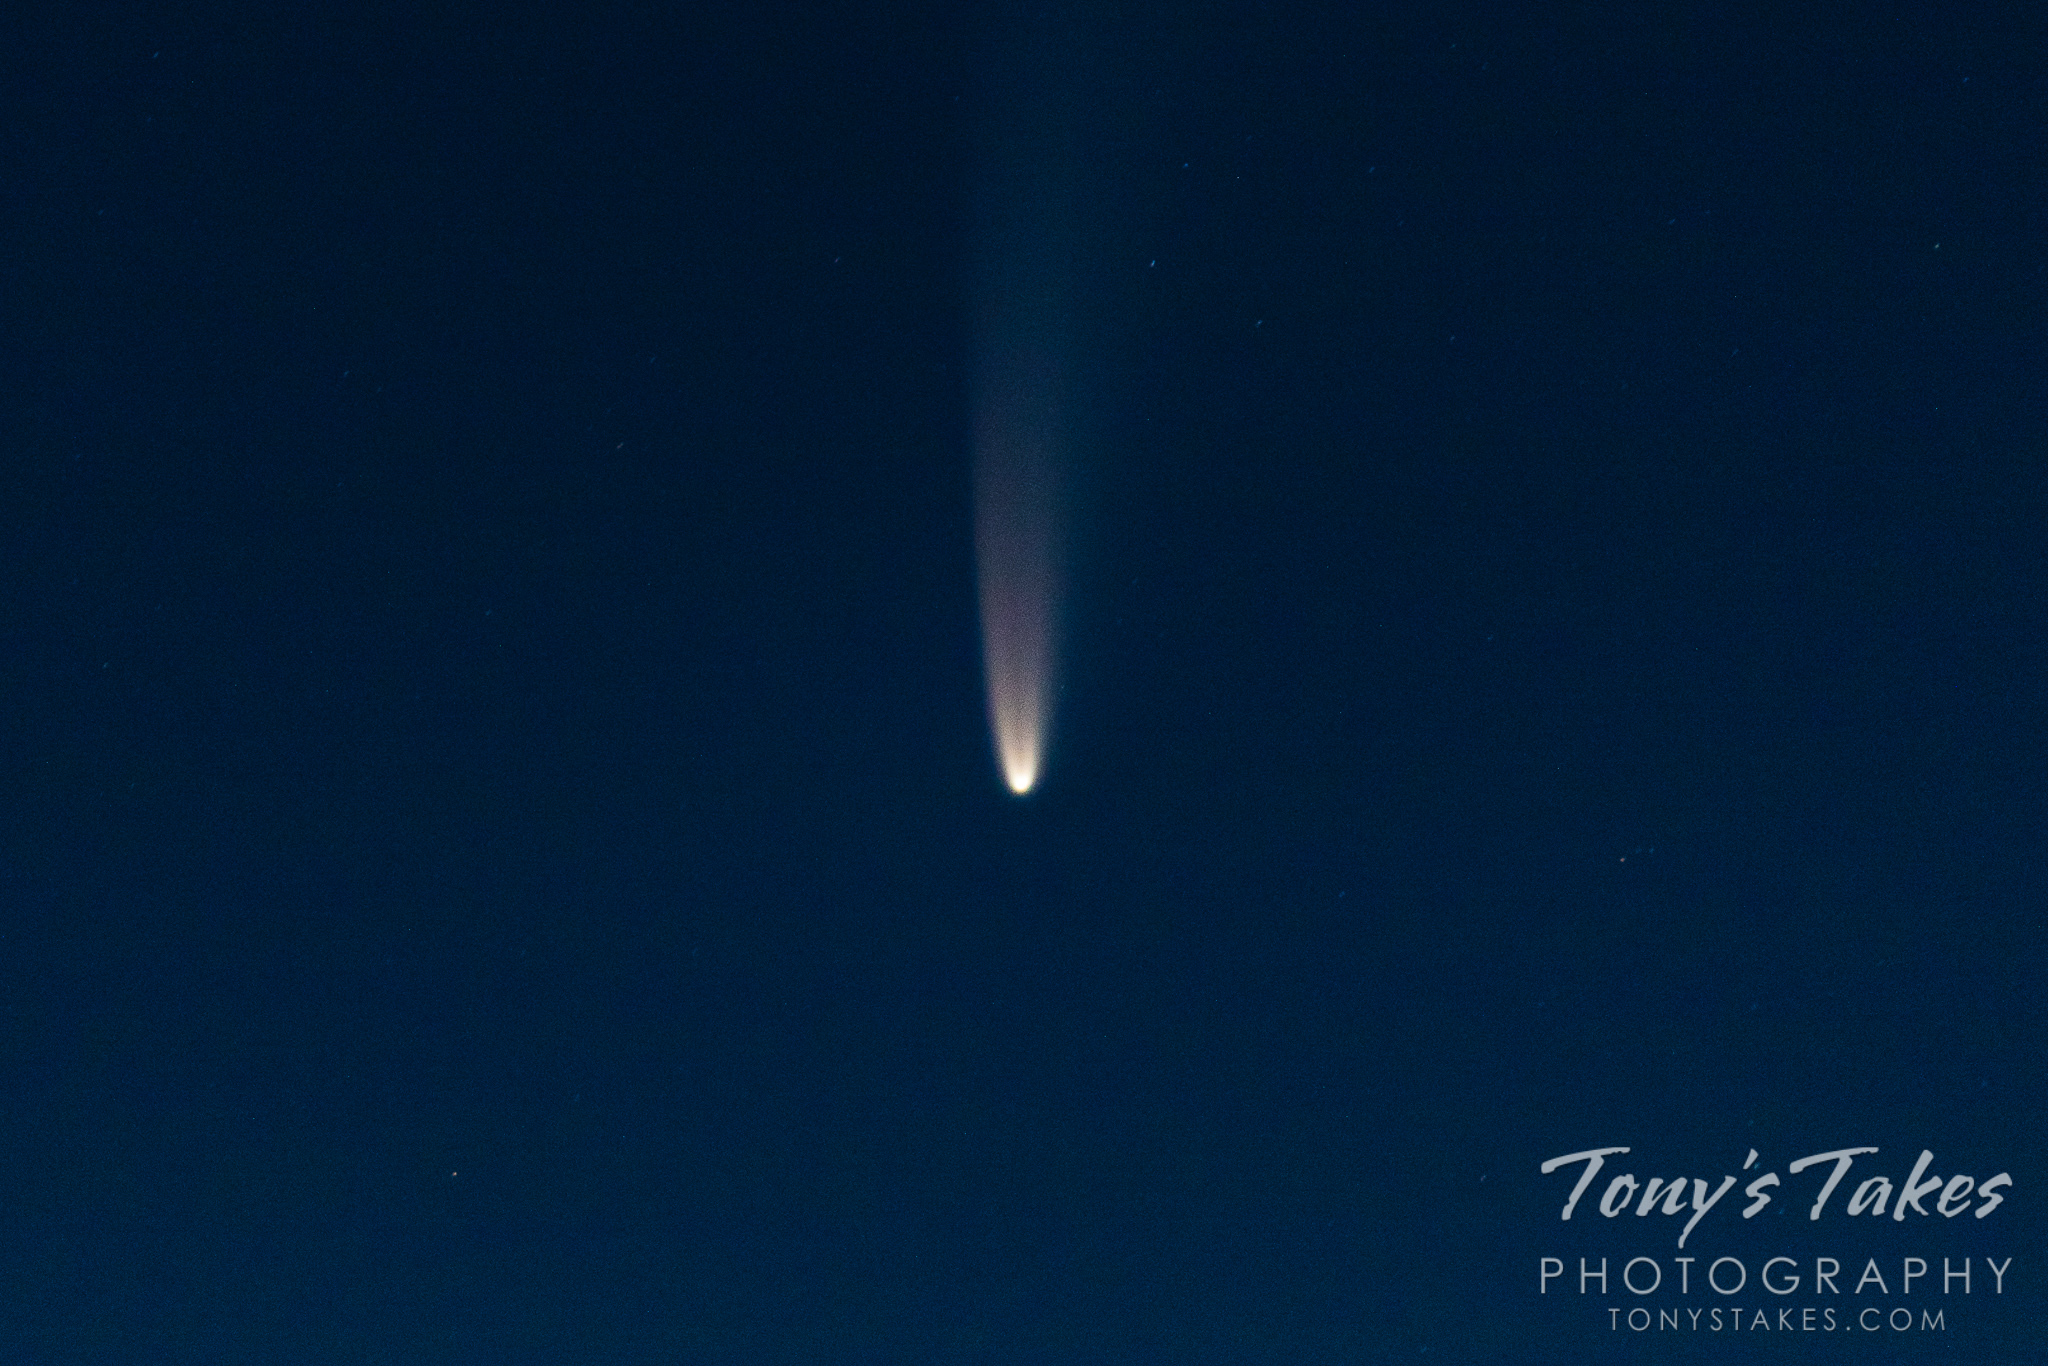 July 2020 - Comet NEOWISE in the skies over Colorado. (© Tony's Takes)